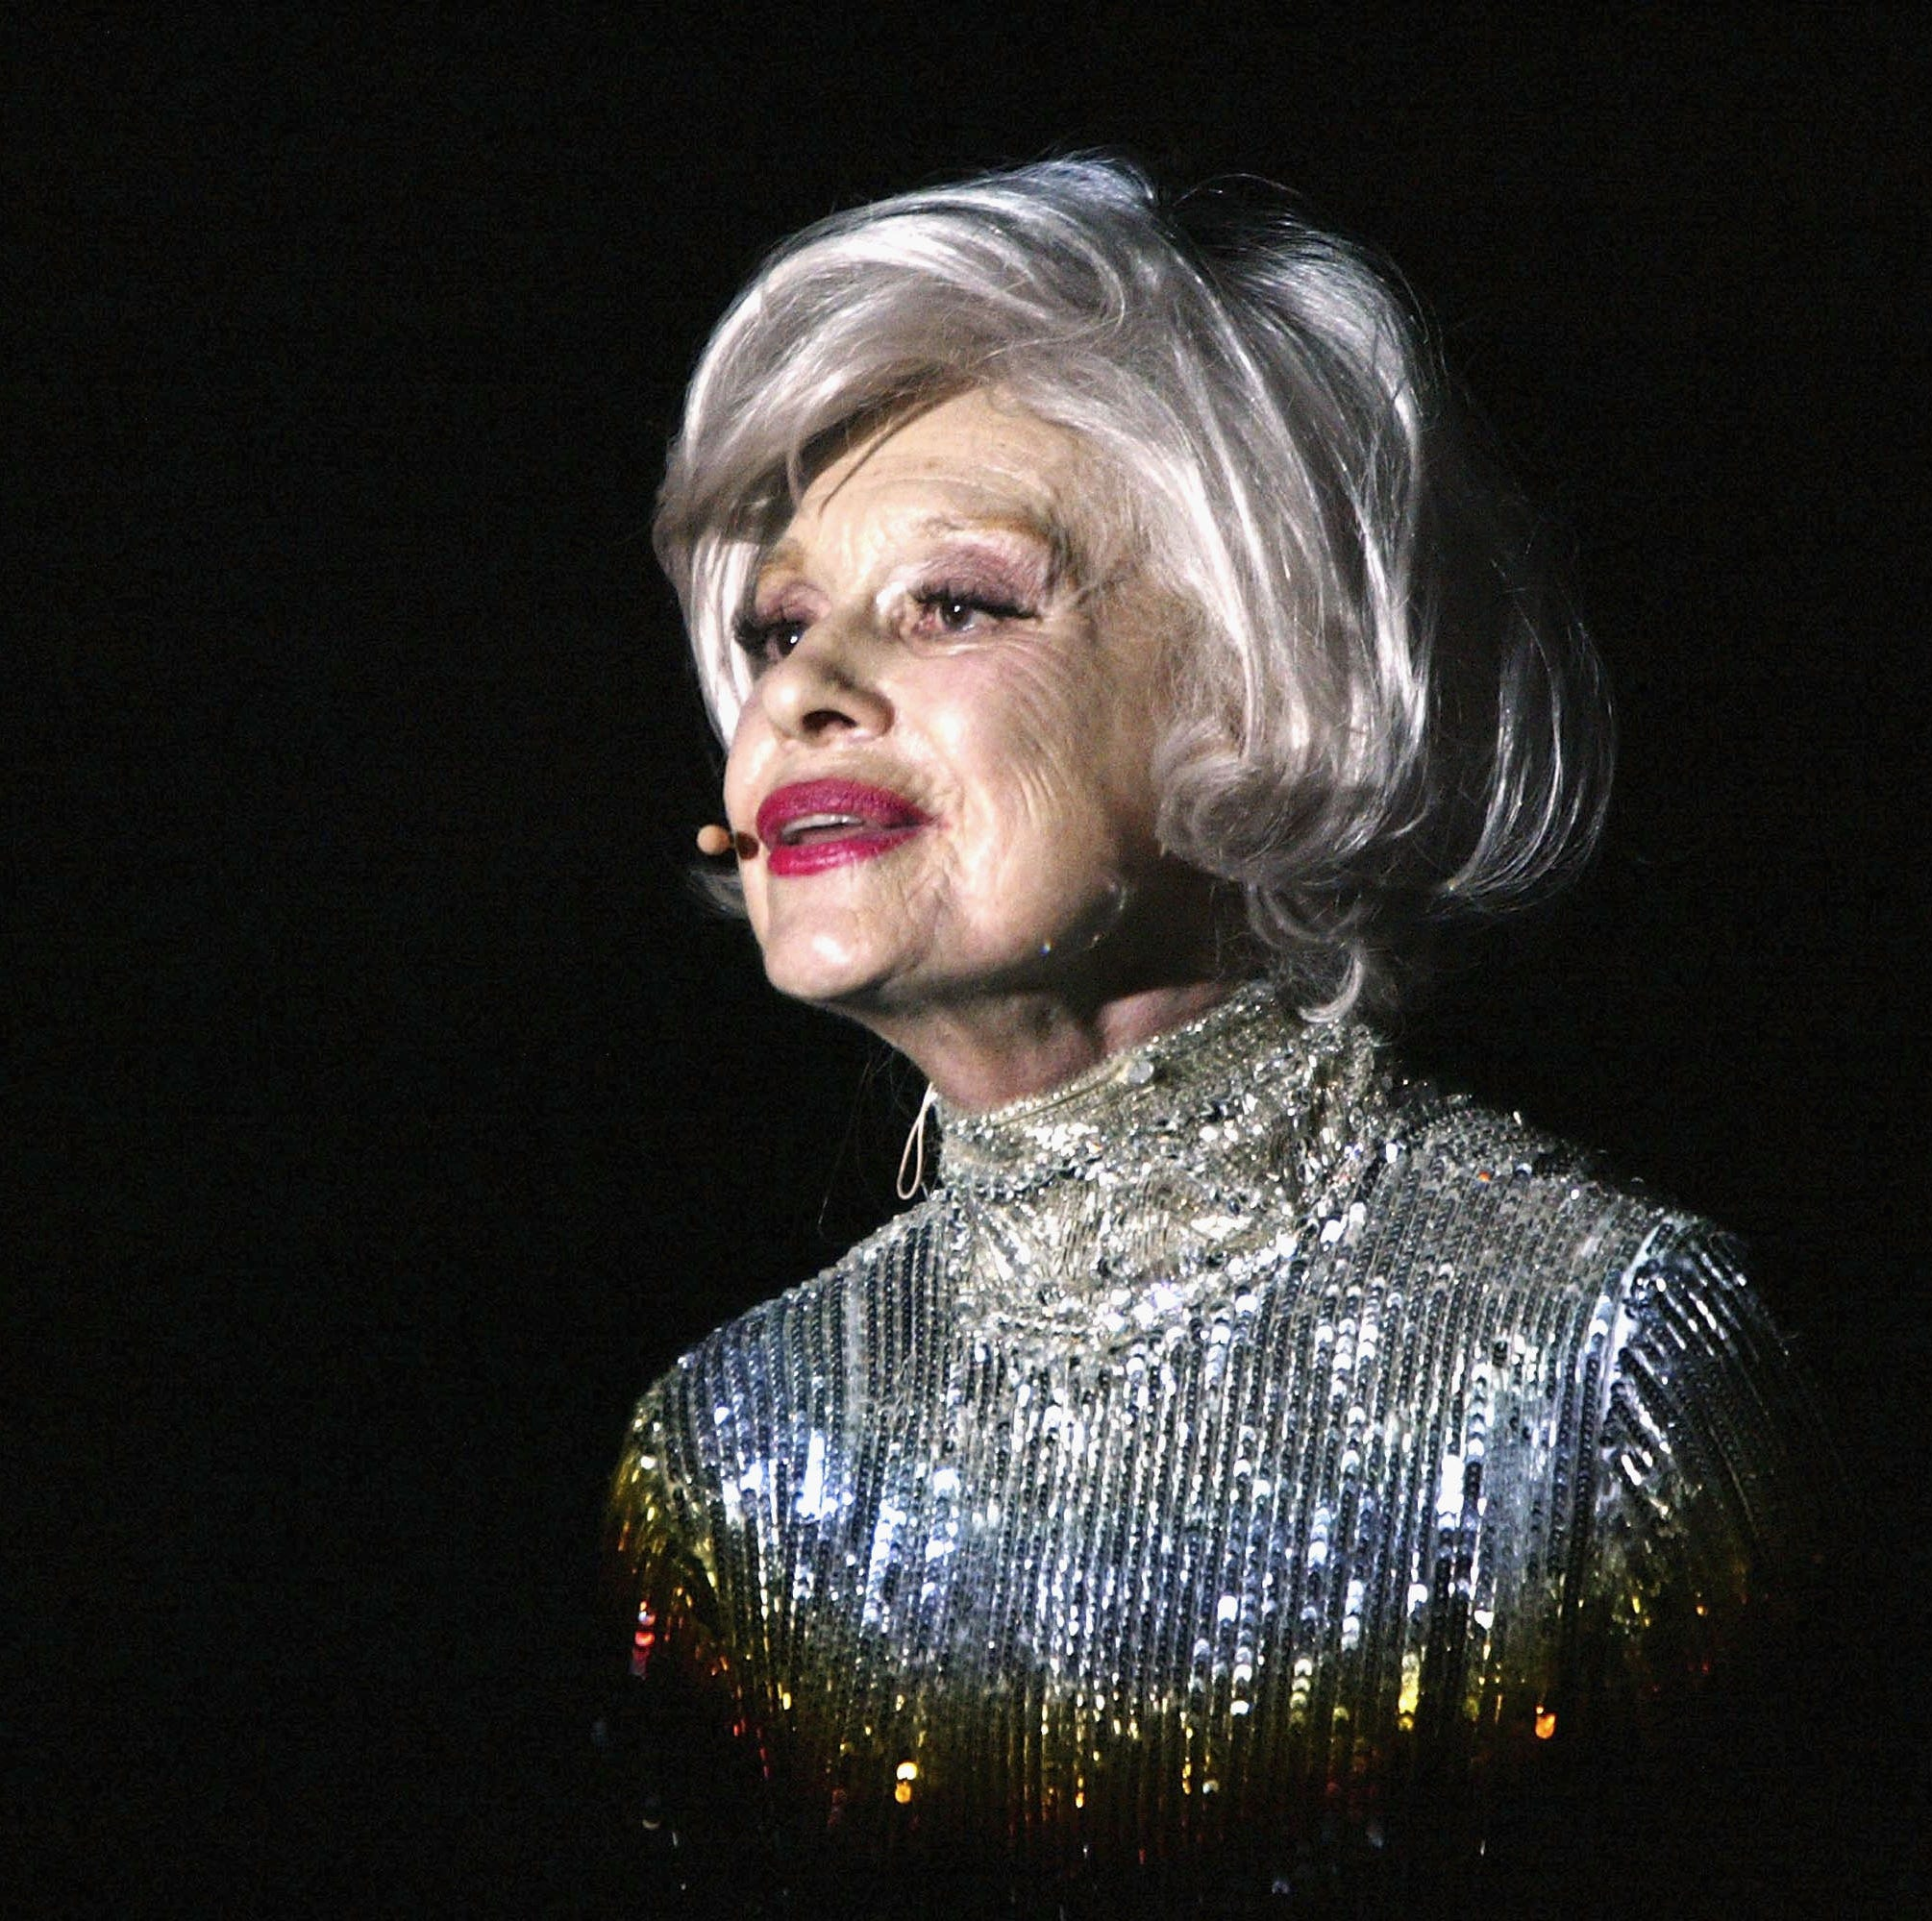 Broadway icon Carol Channing remembered in the Coachella Valley as 'unsurpassable'